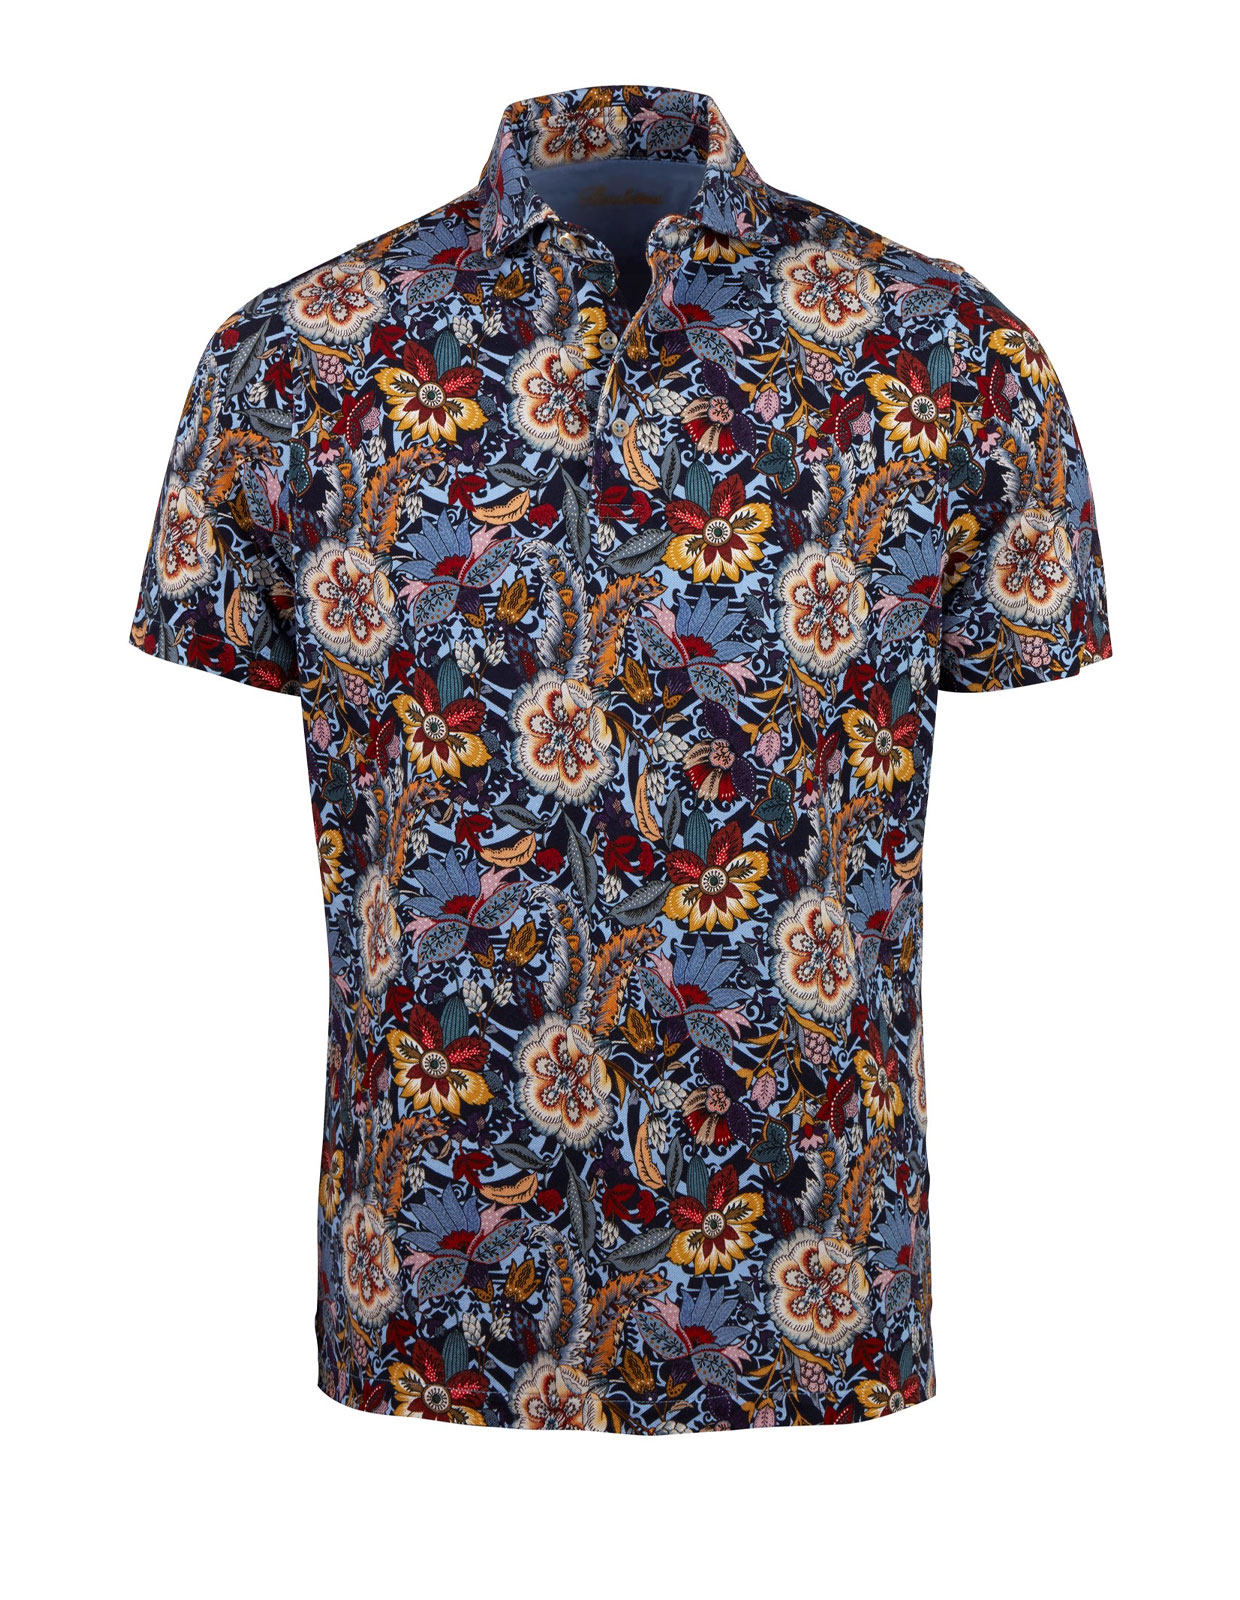 Polo Shirt Printed Flower Cotton Blue Floral